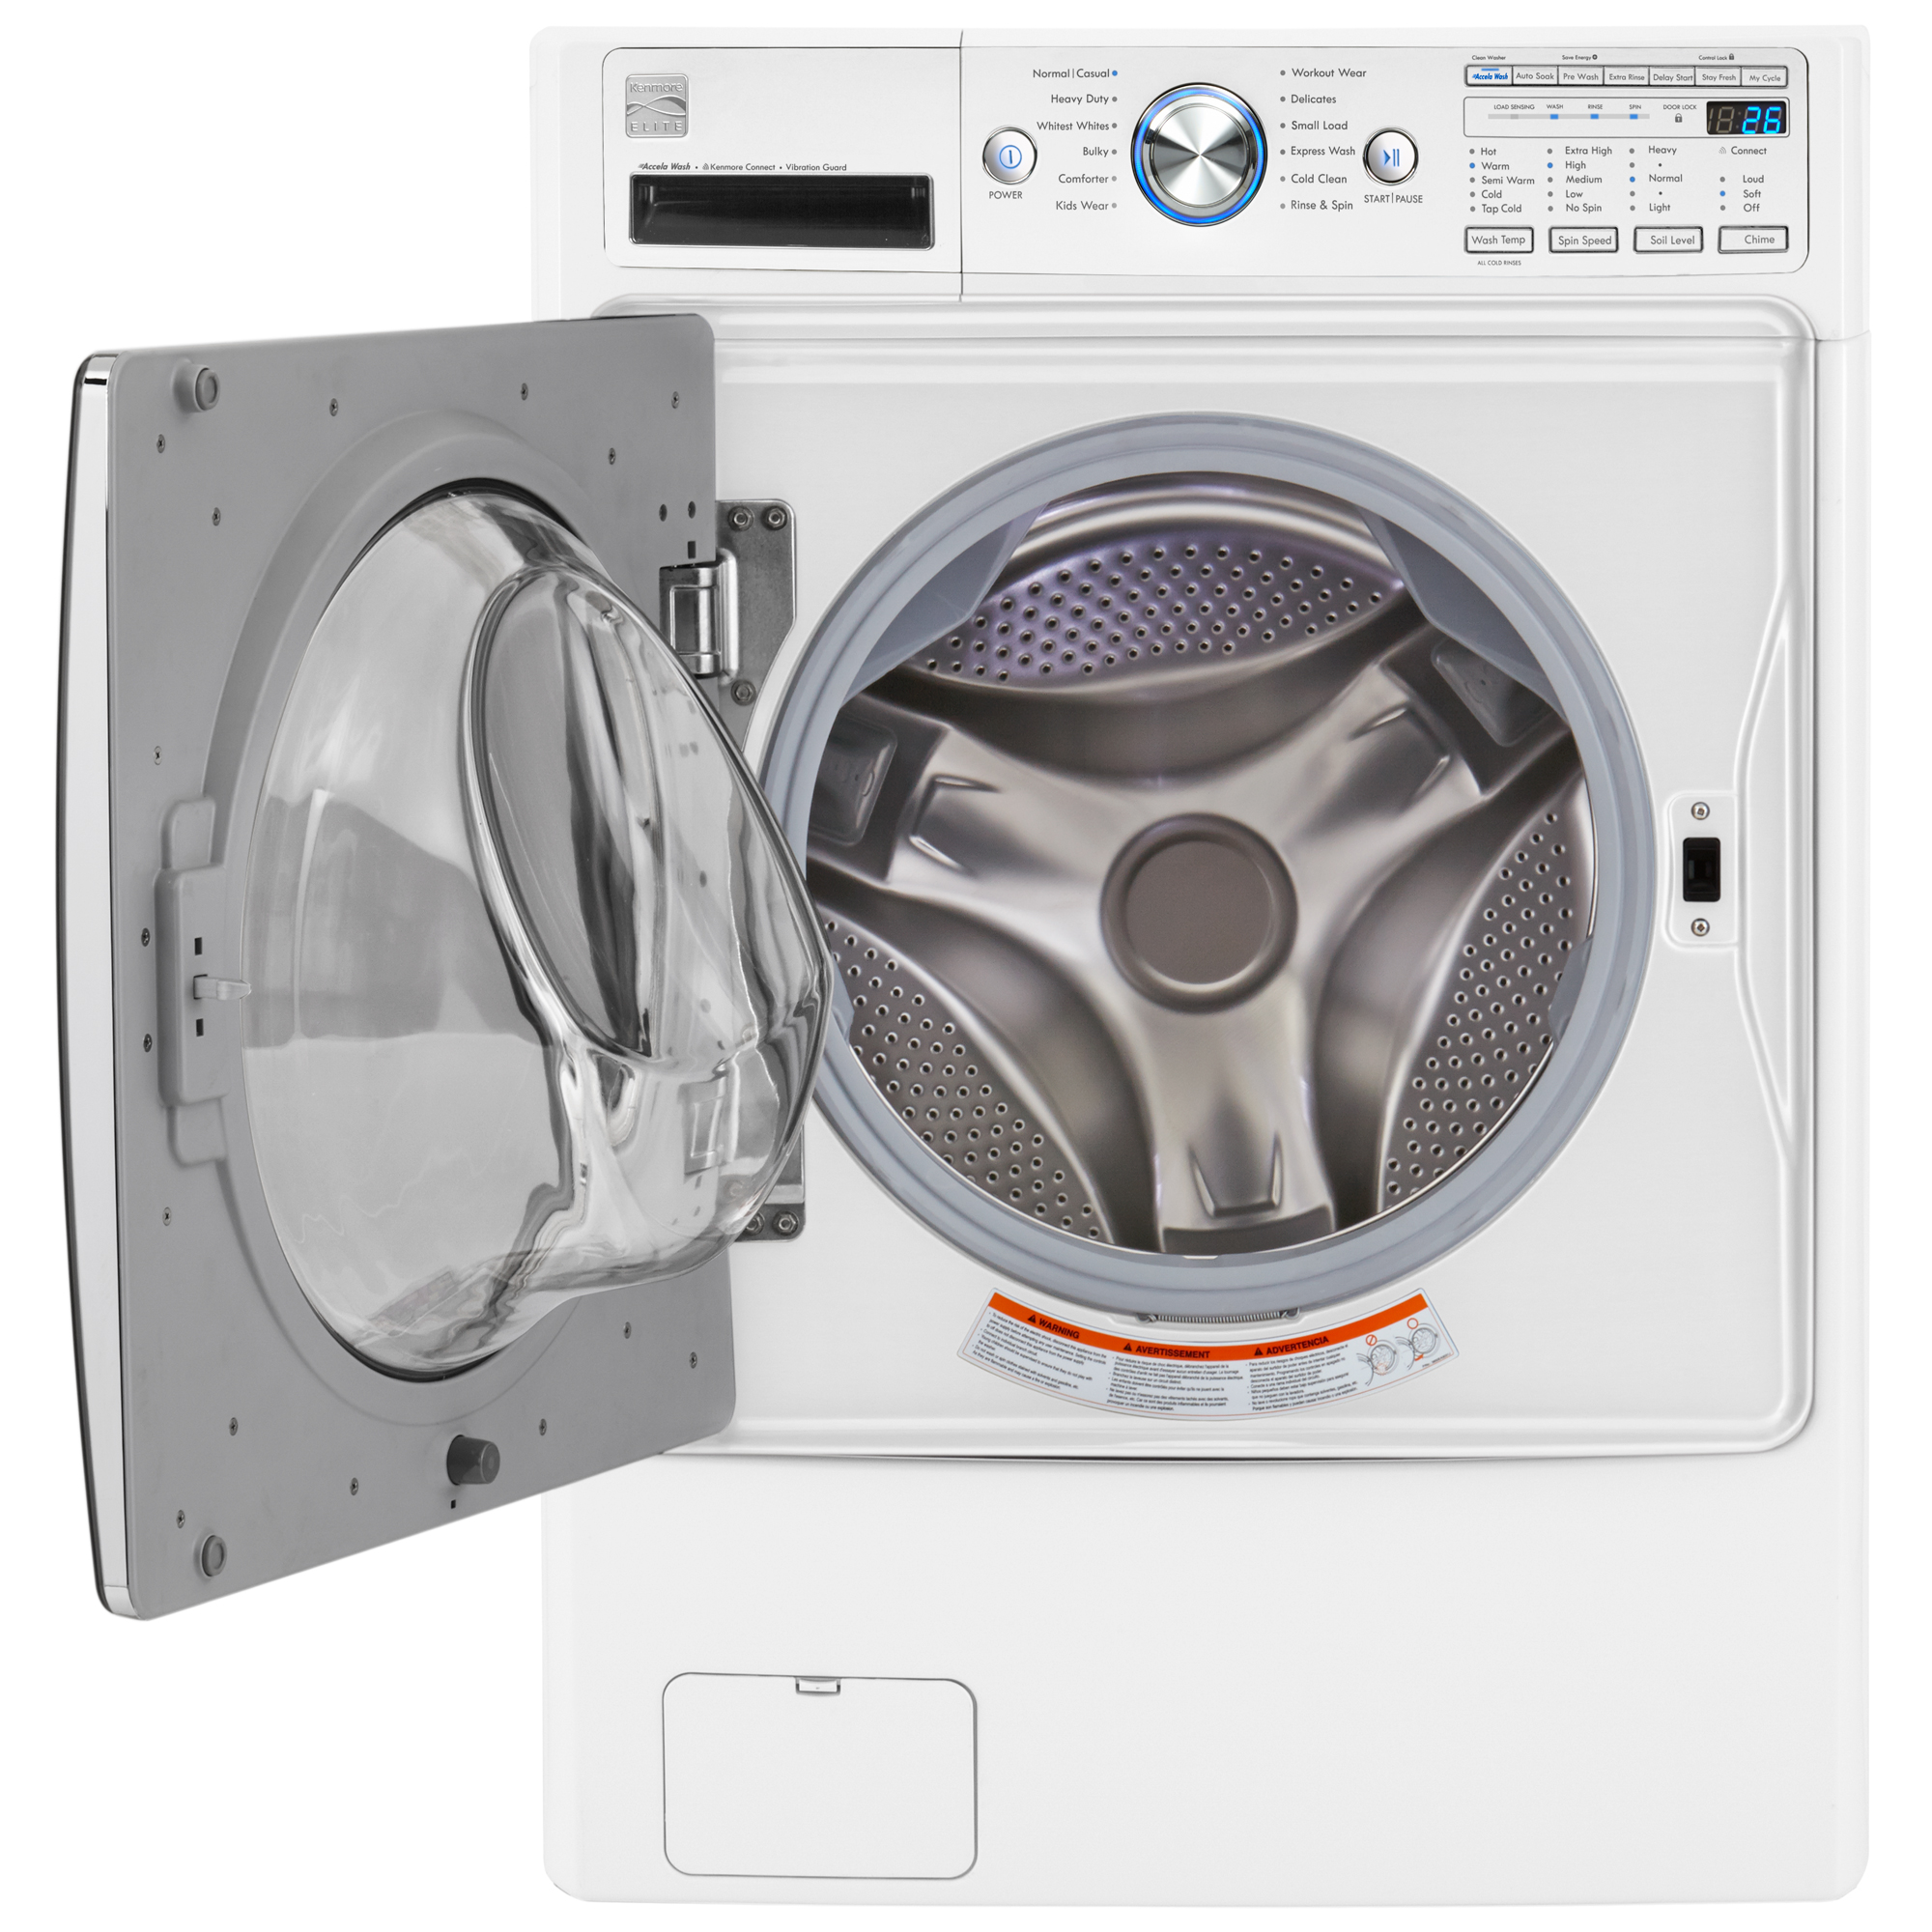 Kenmore Elite 41482 4.5 cu. ft. Front-Load Washer w/ Accela Wash